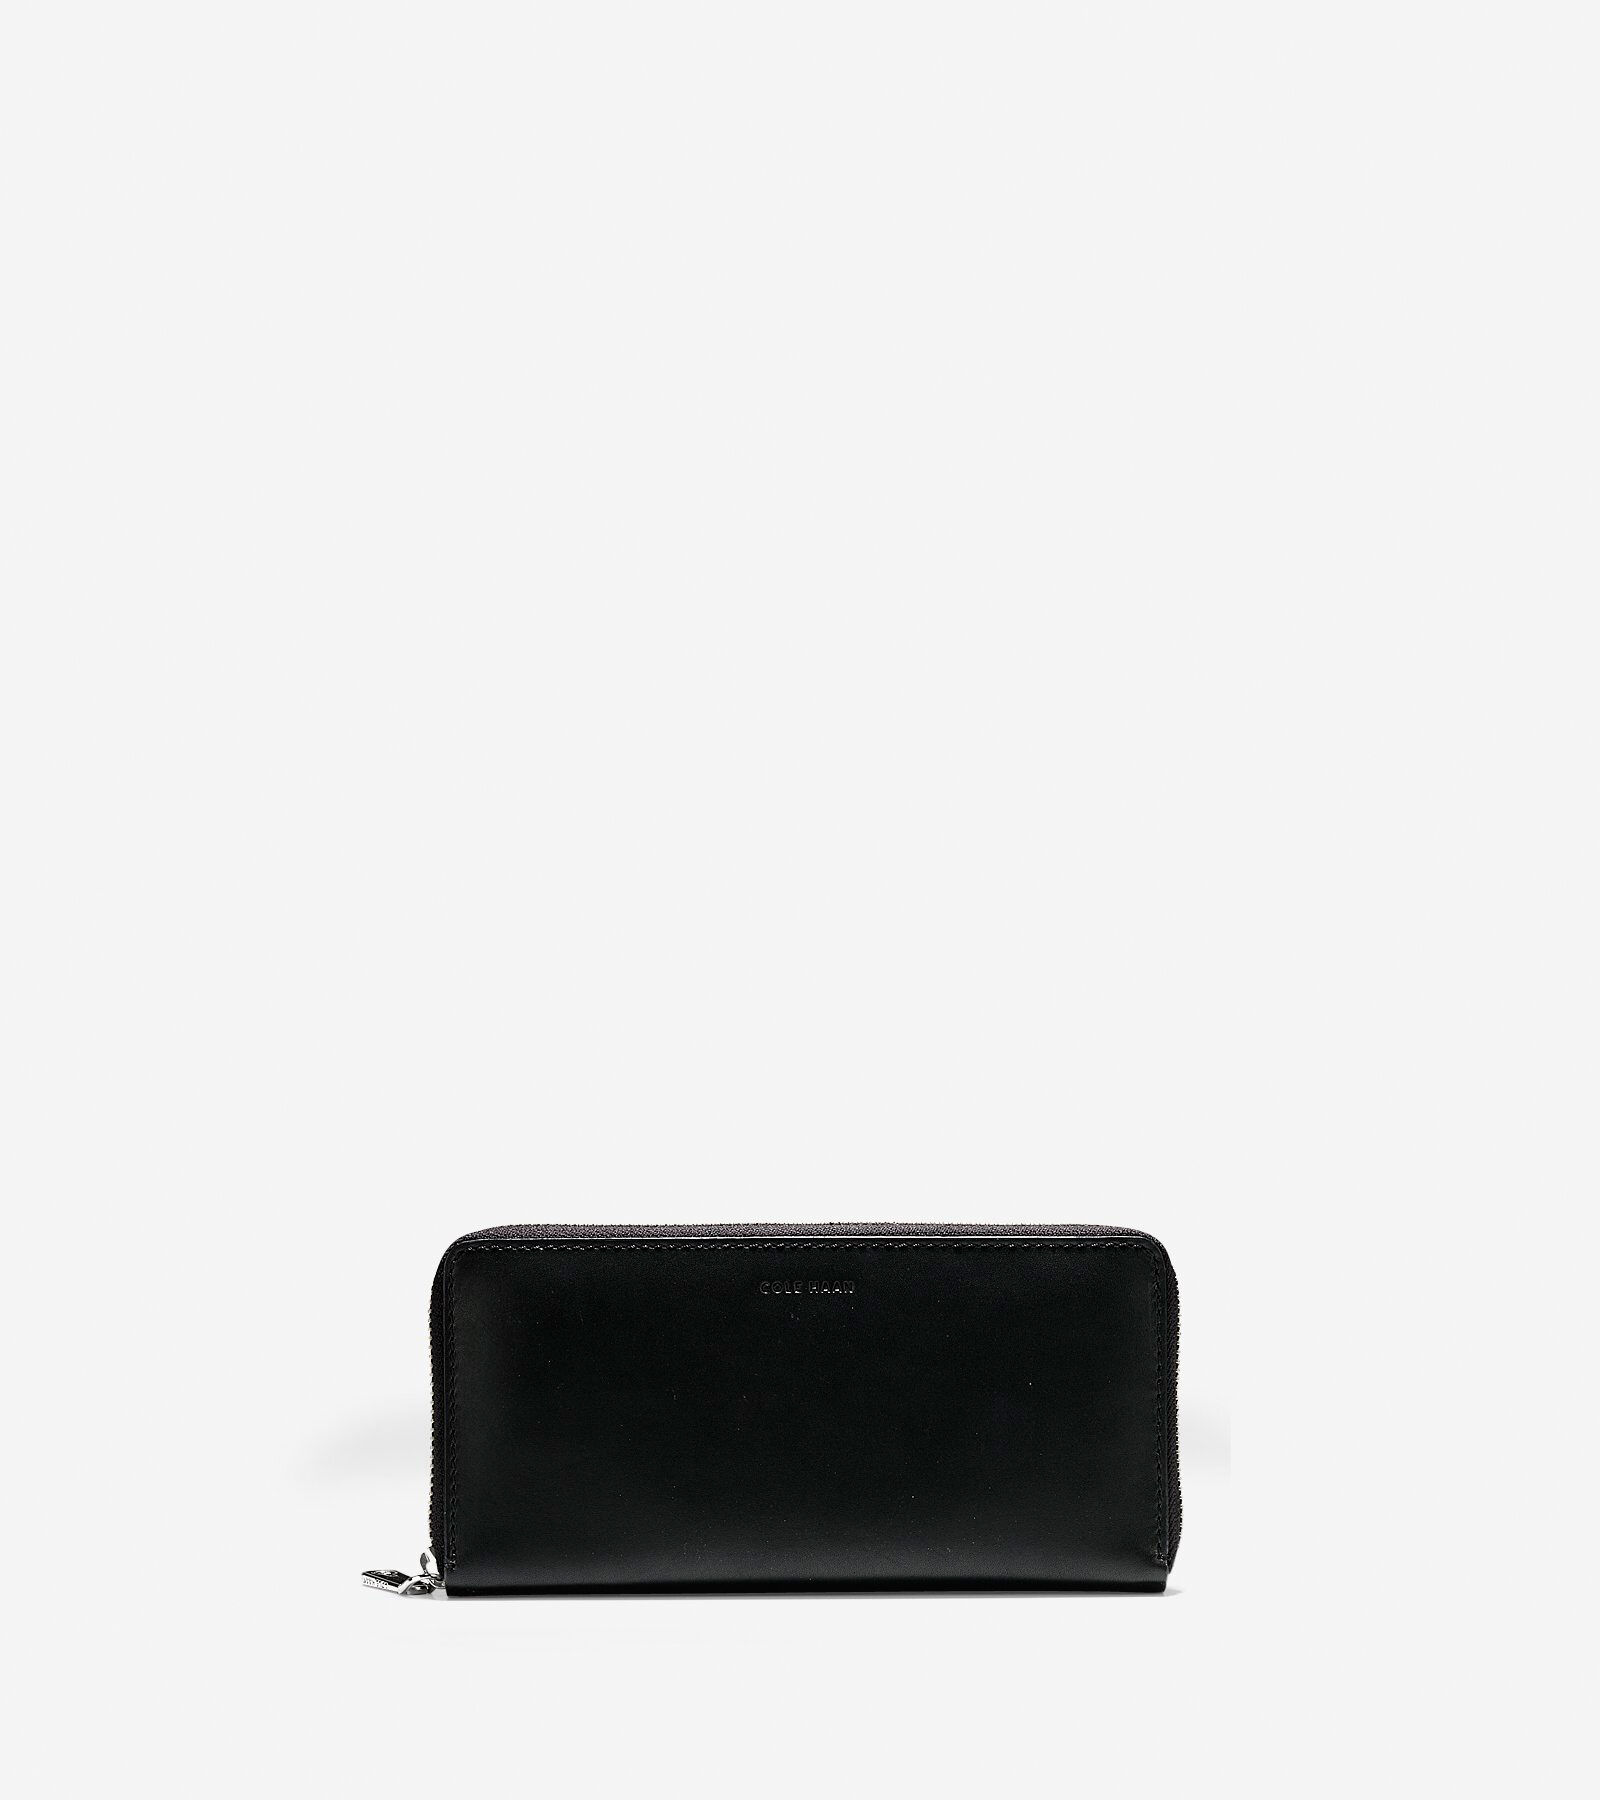 Cole Haan Washington Grand Leather Continental Wallet Free Shipping Cheap Price Sale New Aboz6XEKV